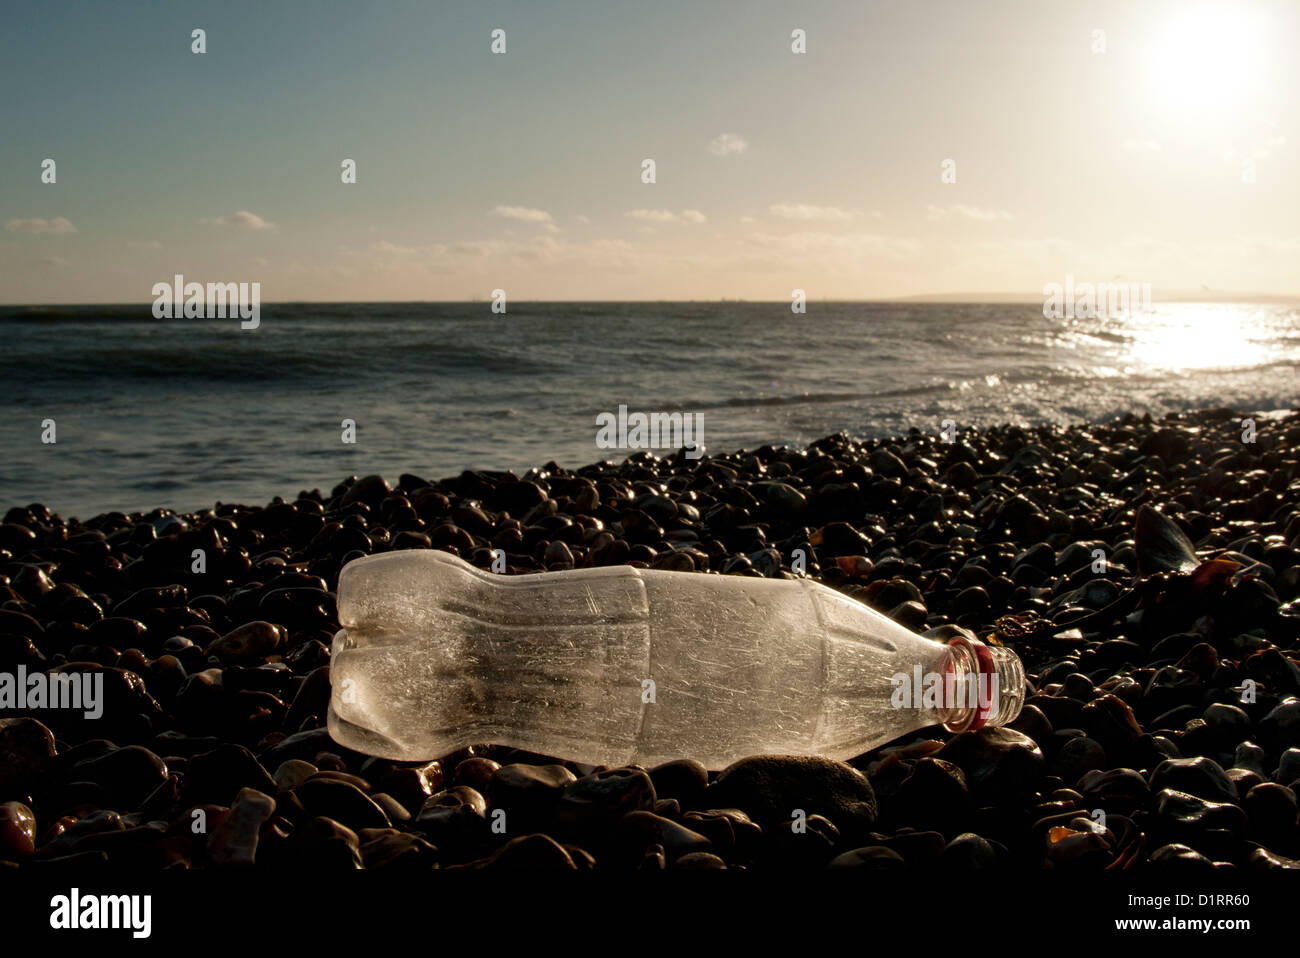 coke bottle washed up on the beach - Stock Image